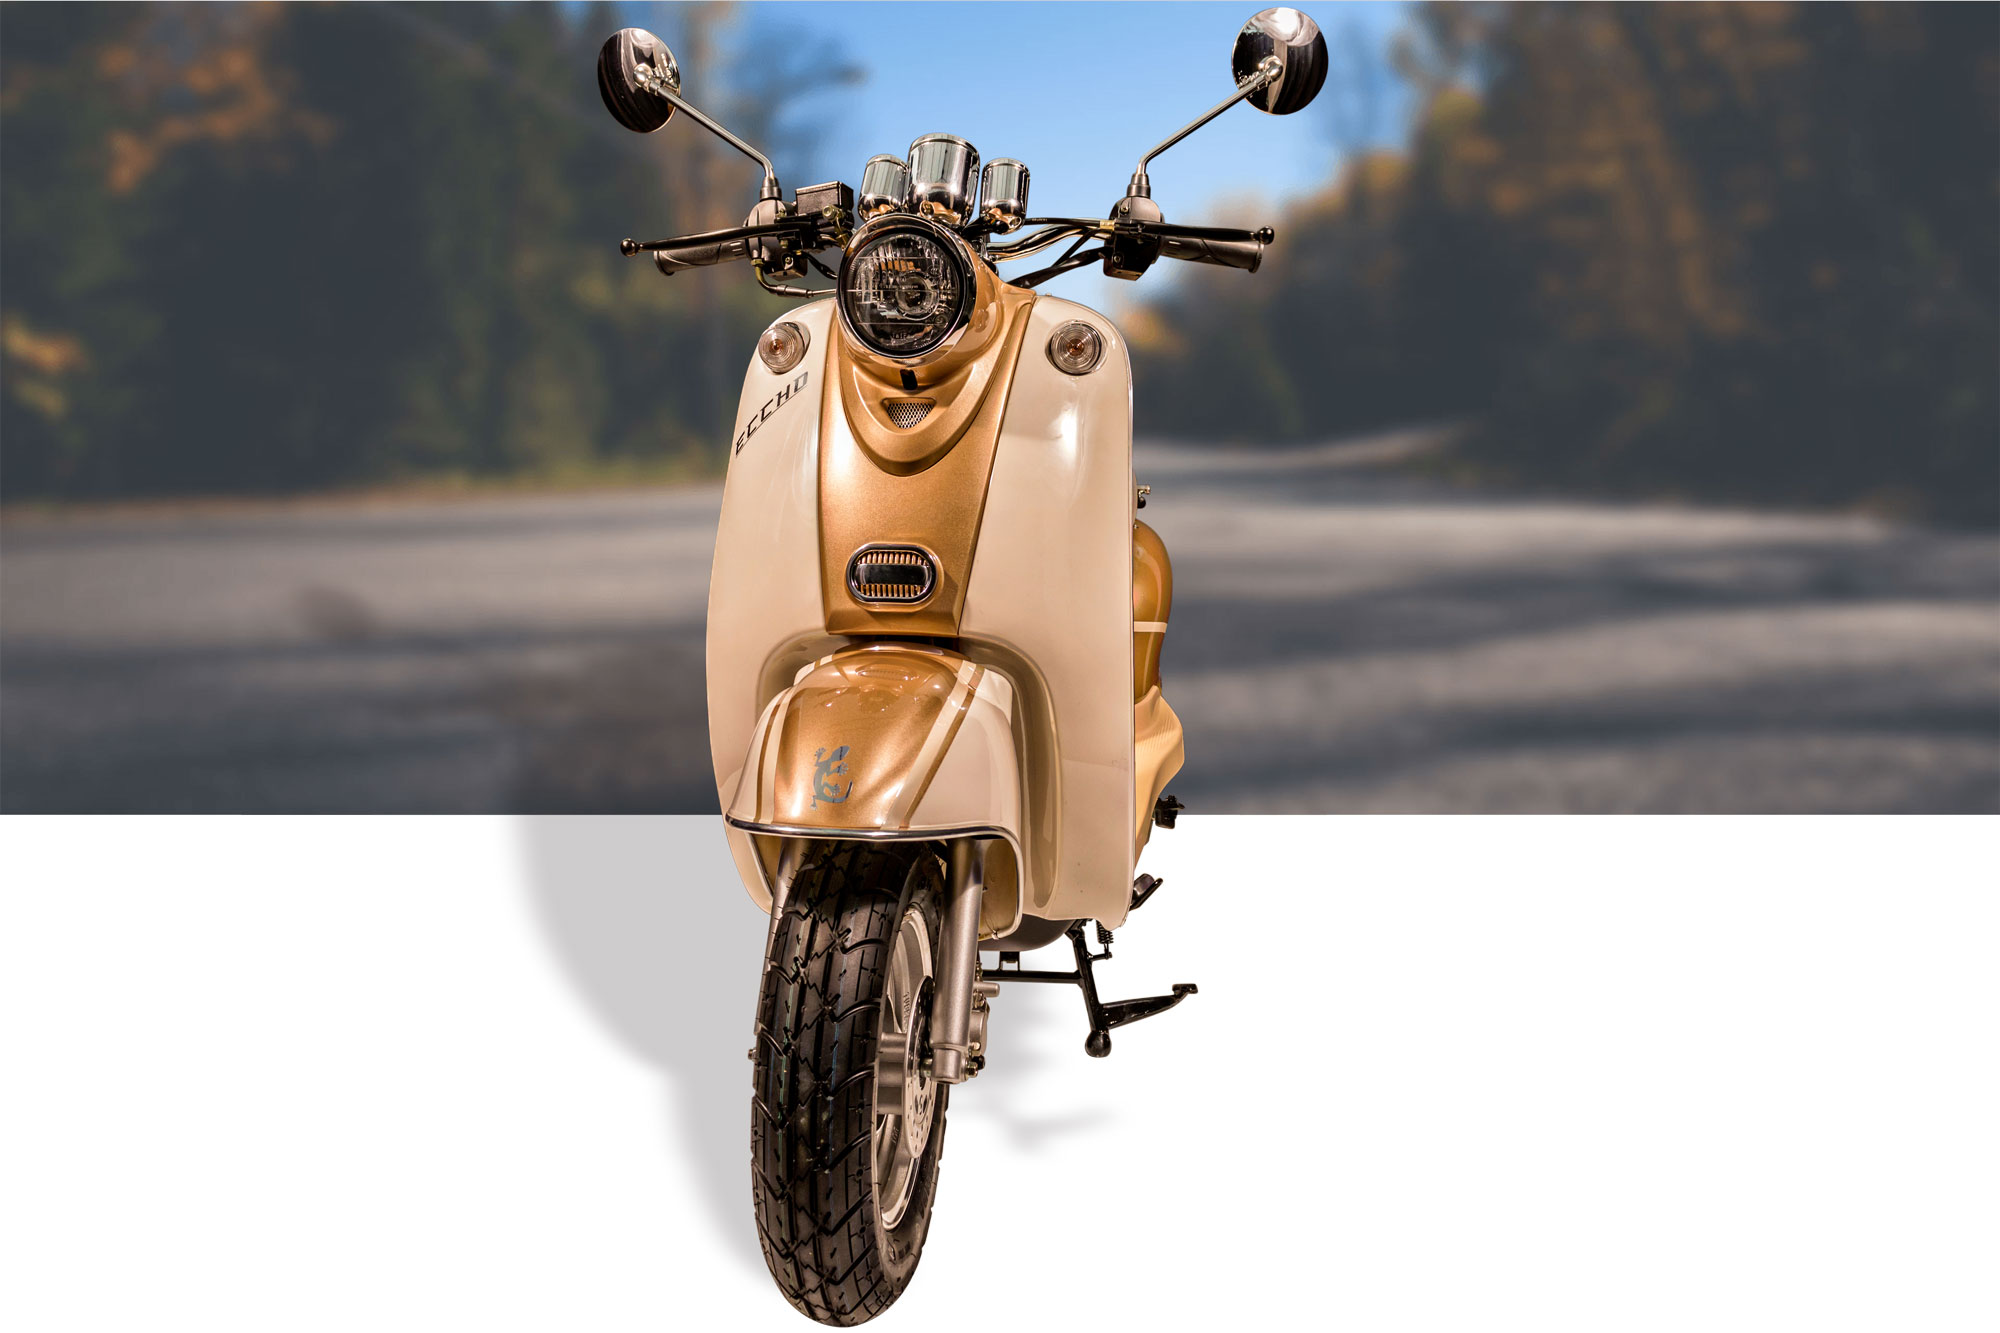 SCOOTER-50-ECCHO-RETRO-50-GOLD-II-EFI-06